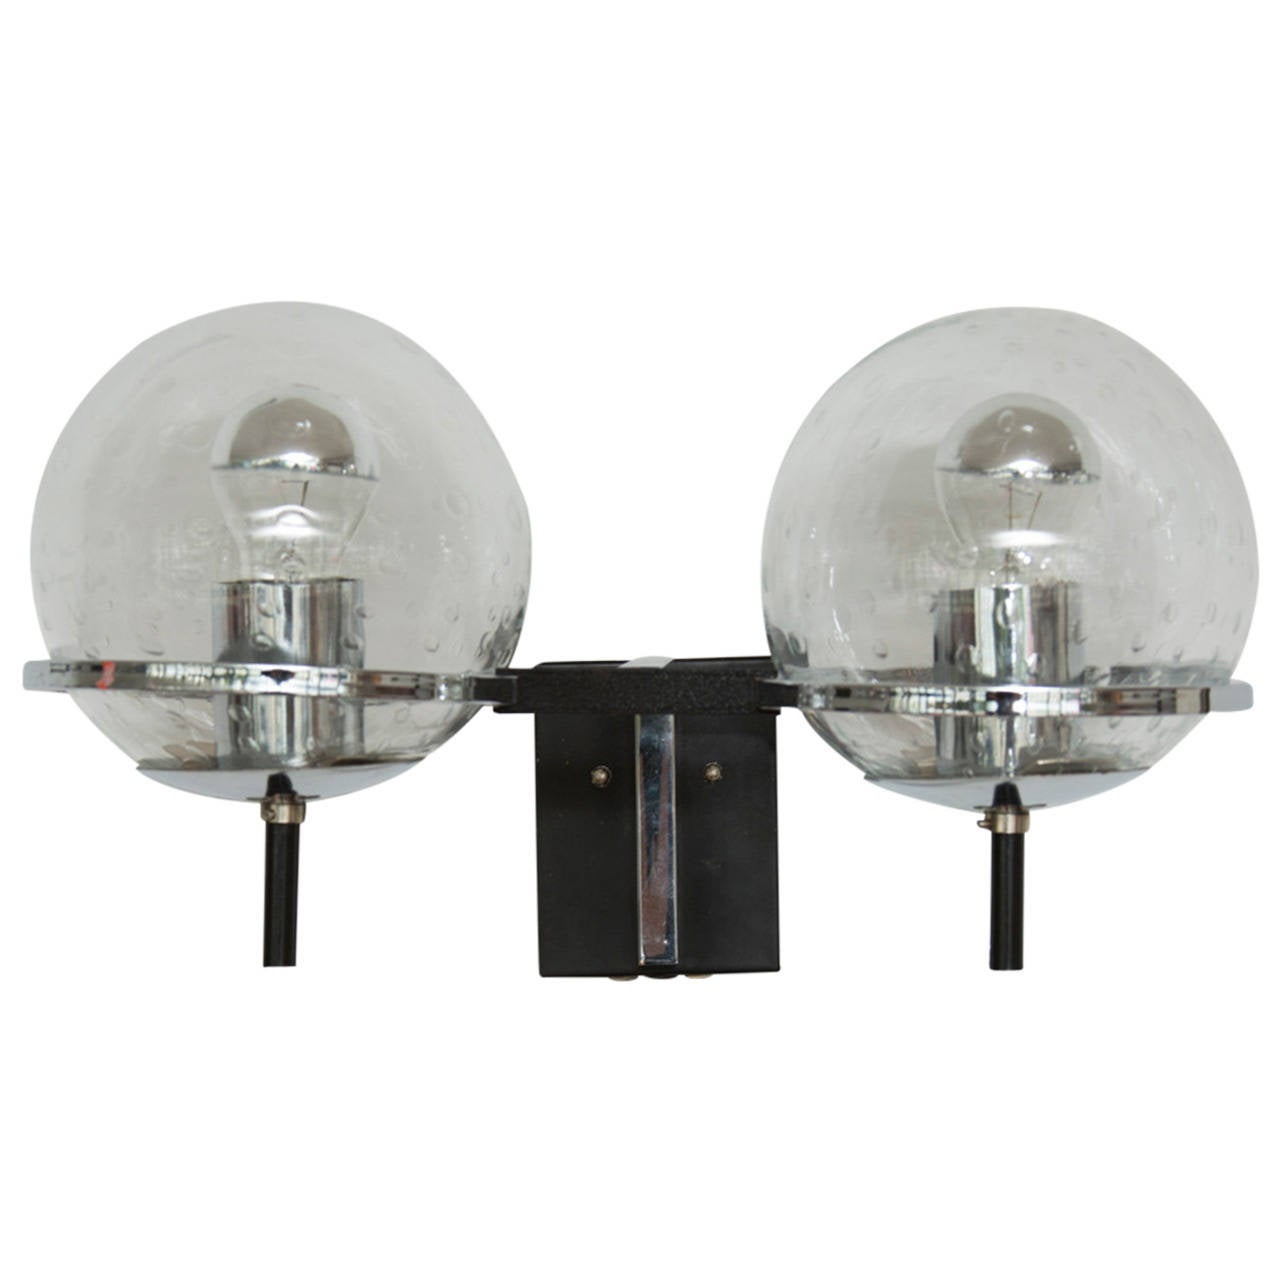 Pair of RAAK Double Globe Wall Lights For Sale at 1stdibs